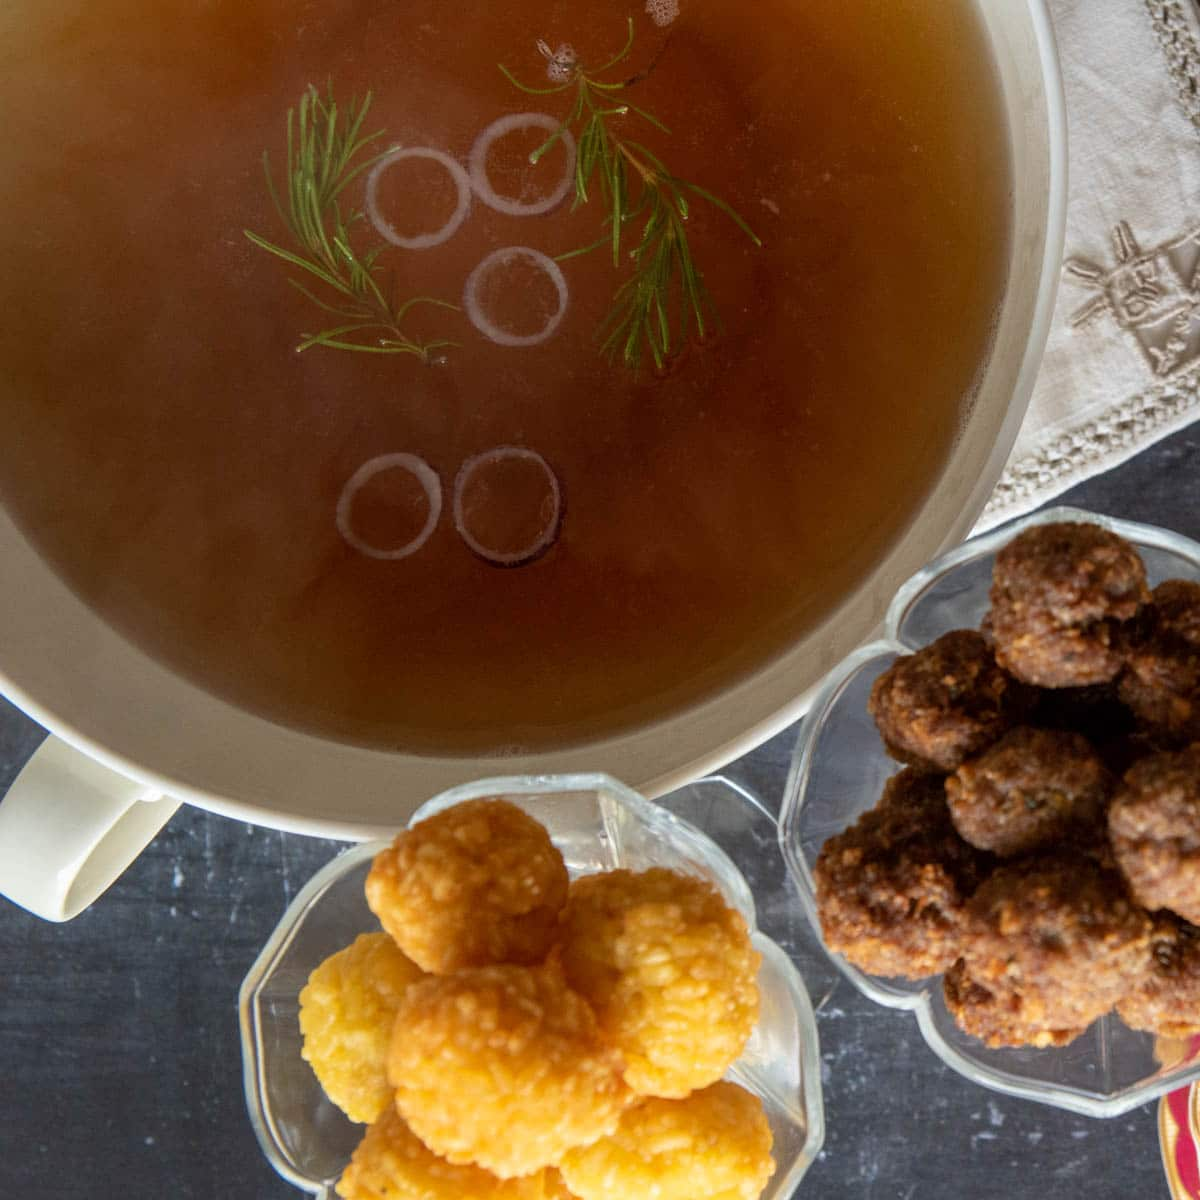 beef consomme served with rice and meat balls